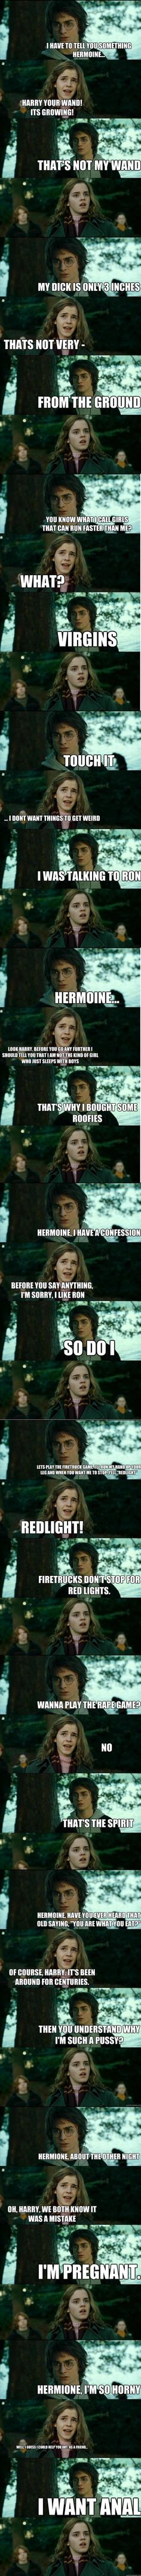 H0rny Harry is back! - funny pictures #funnypictures